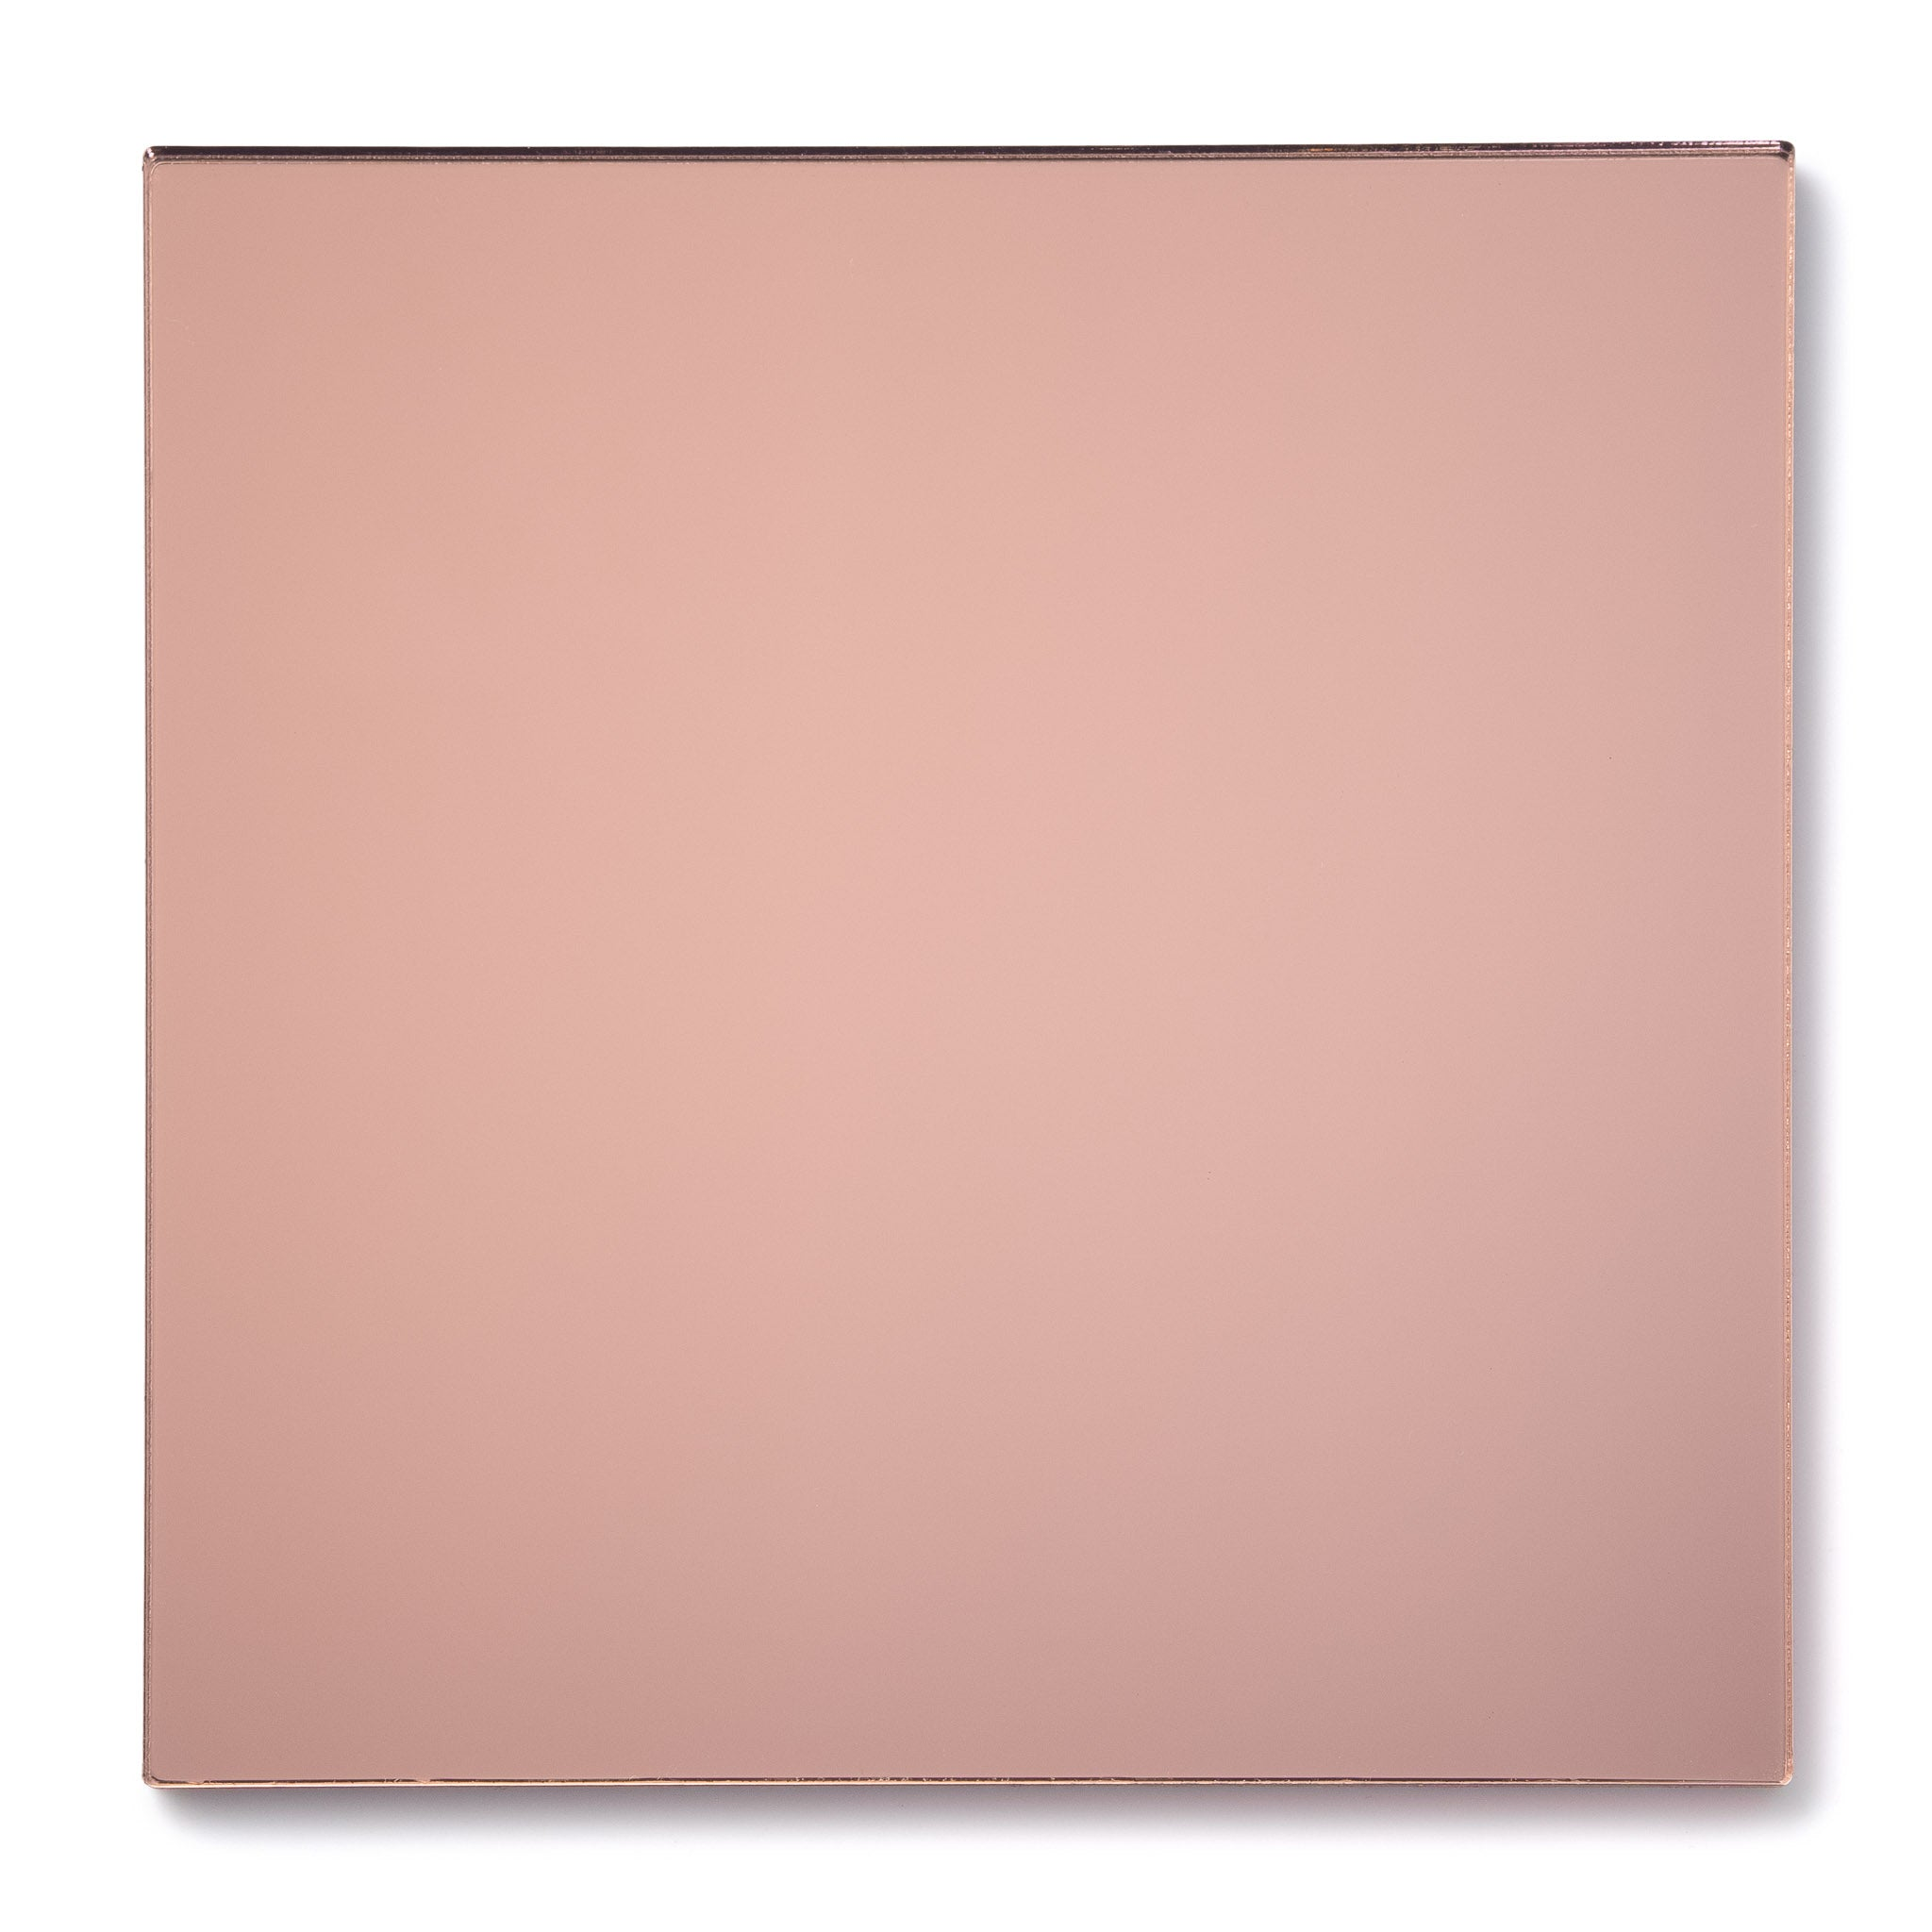 Rose Gold Mirror Acrylic Sheet Canal Plastics Center